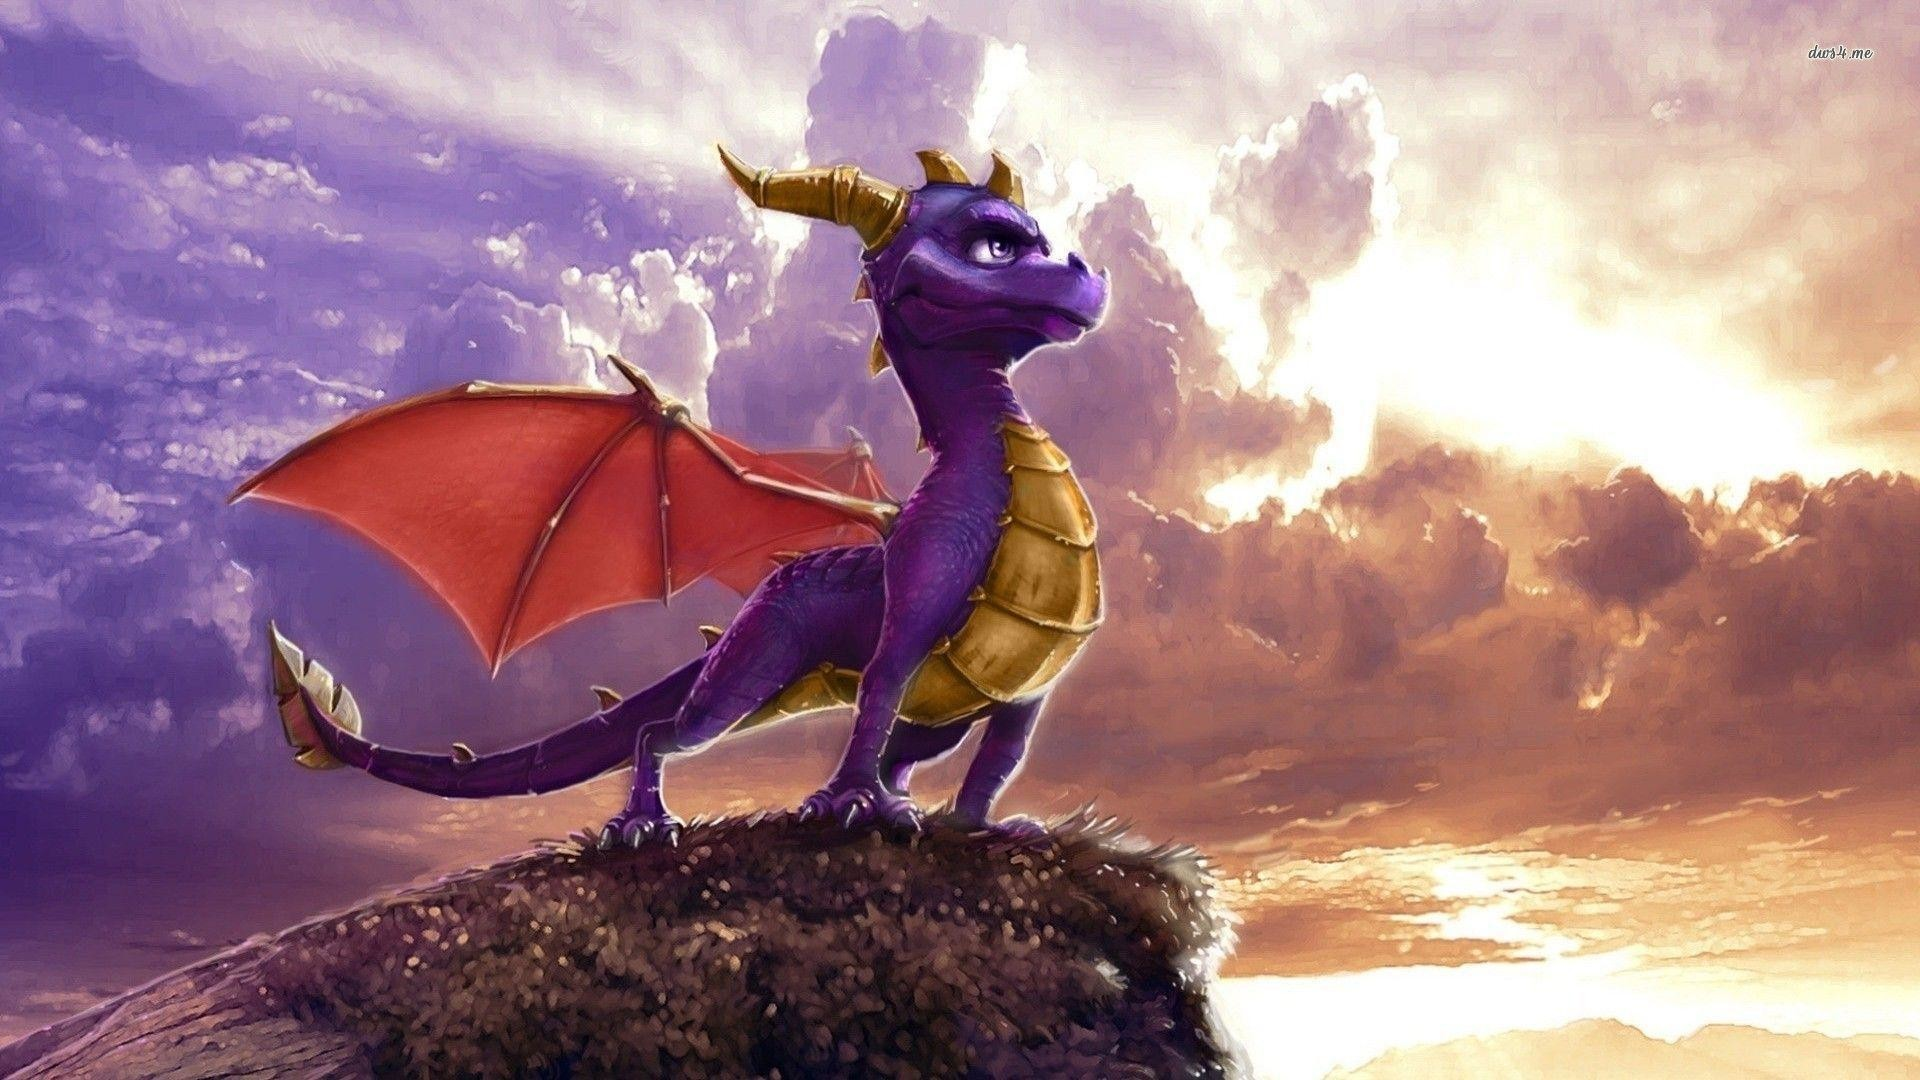 Spyro The Dragon Wallpaper 68 Images